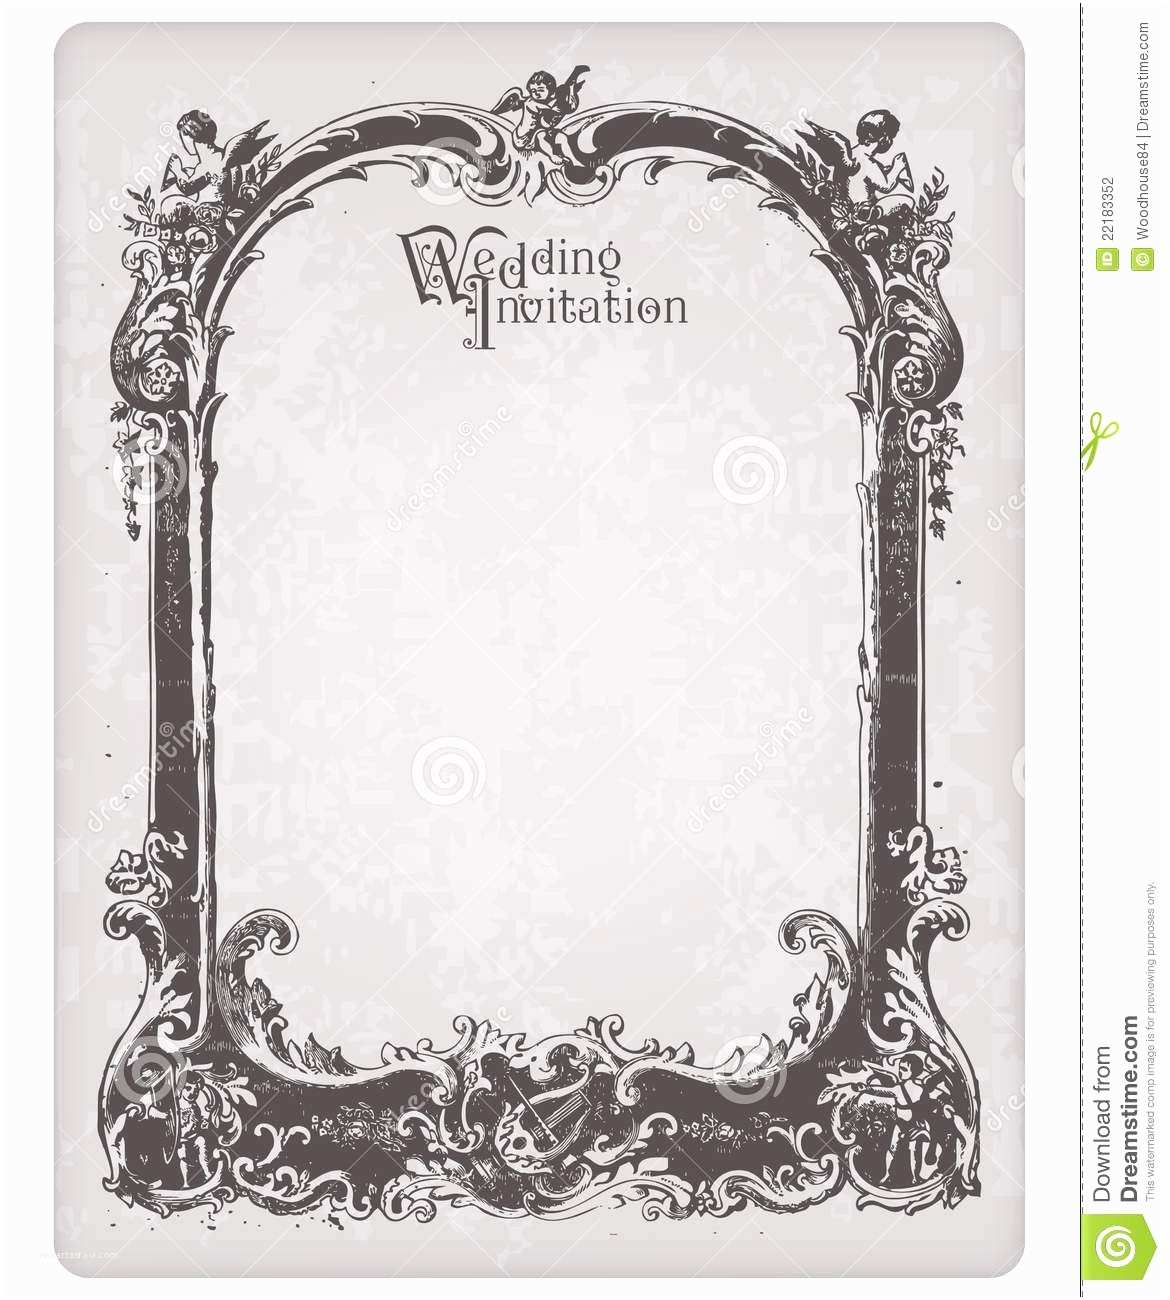 Wedding Invitation Frame Wedding Invitation Frame Best Wedding Invitation Unique